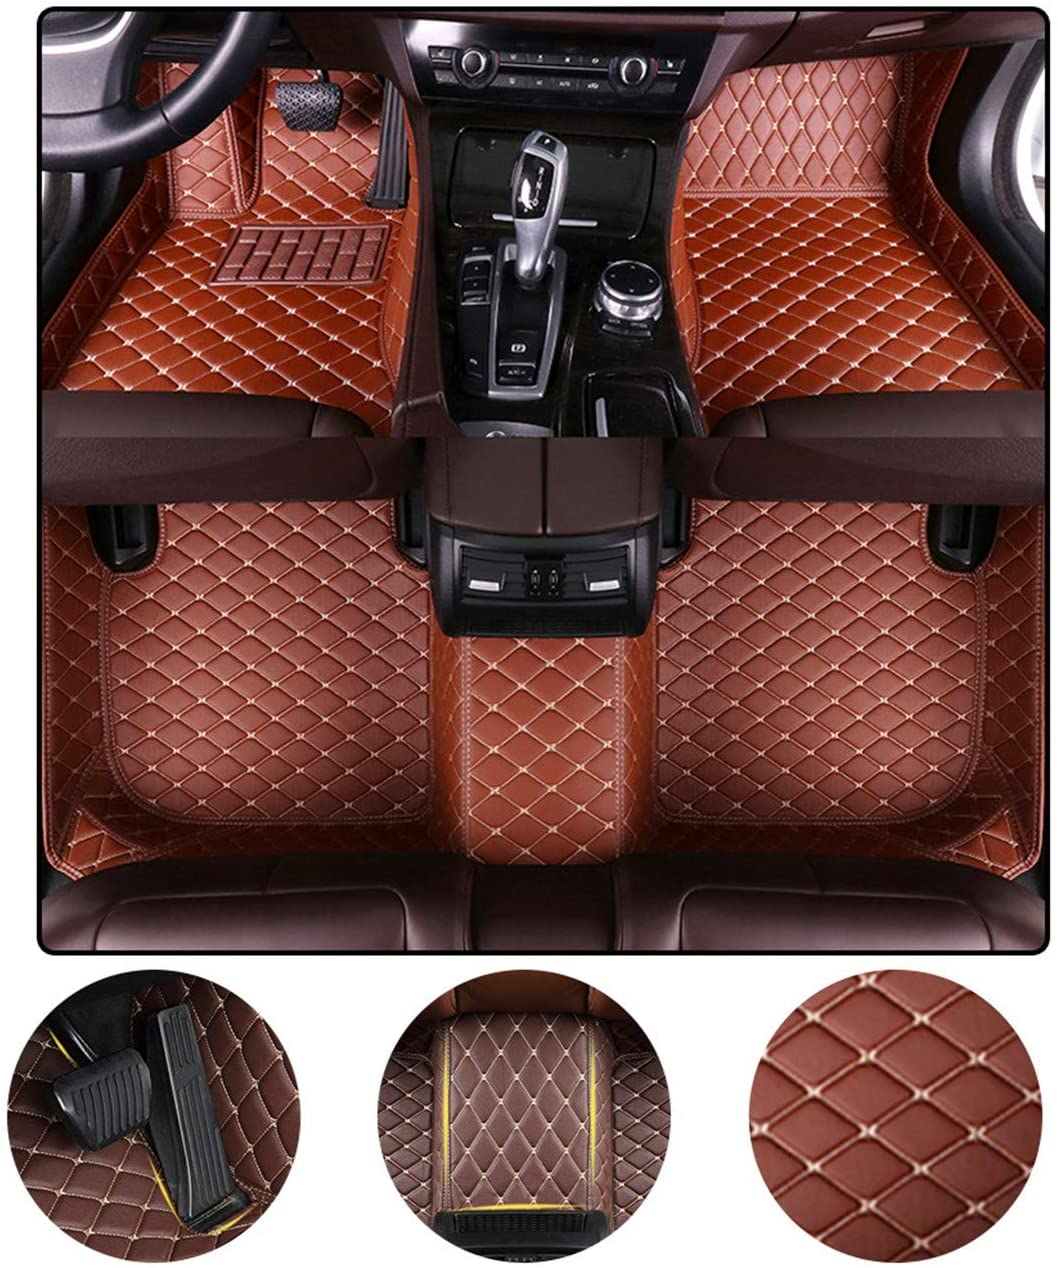 Muchkey Custom Car Floor Mats for Chevrolet Suburban 7-seat 2007-2014 All Weather Non-Slip Full Coverage Protection Luxury Leather Car Liner Set Brown